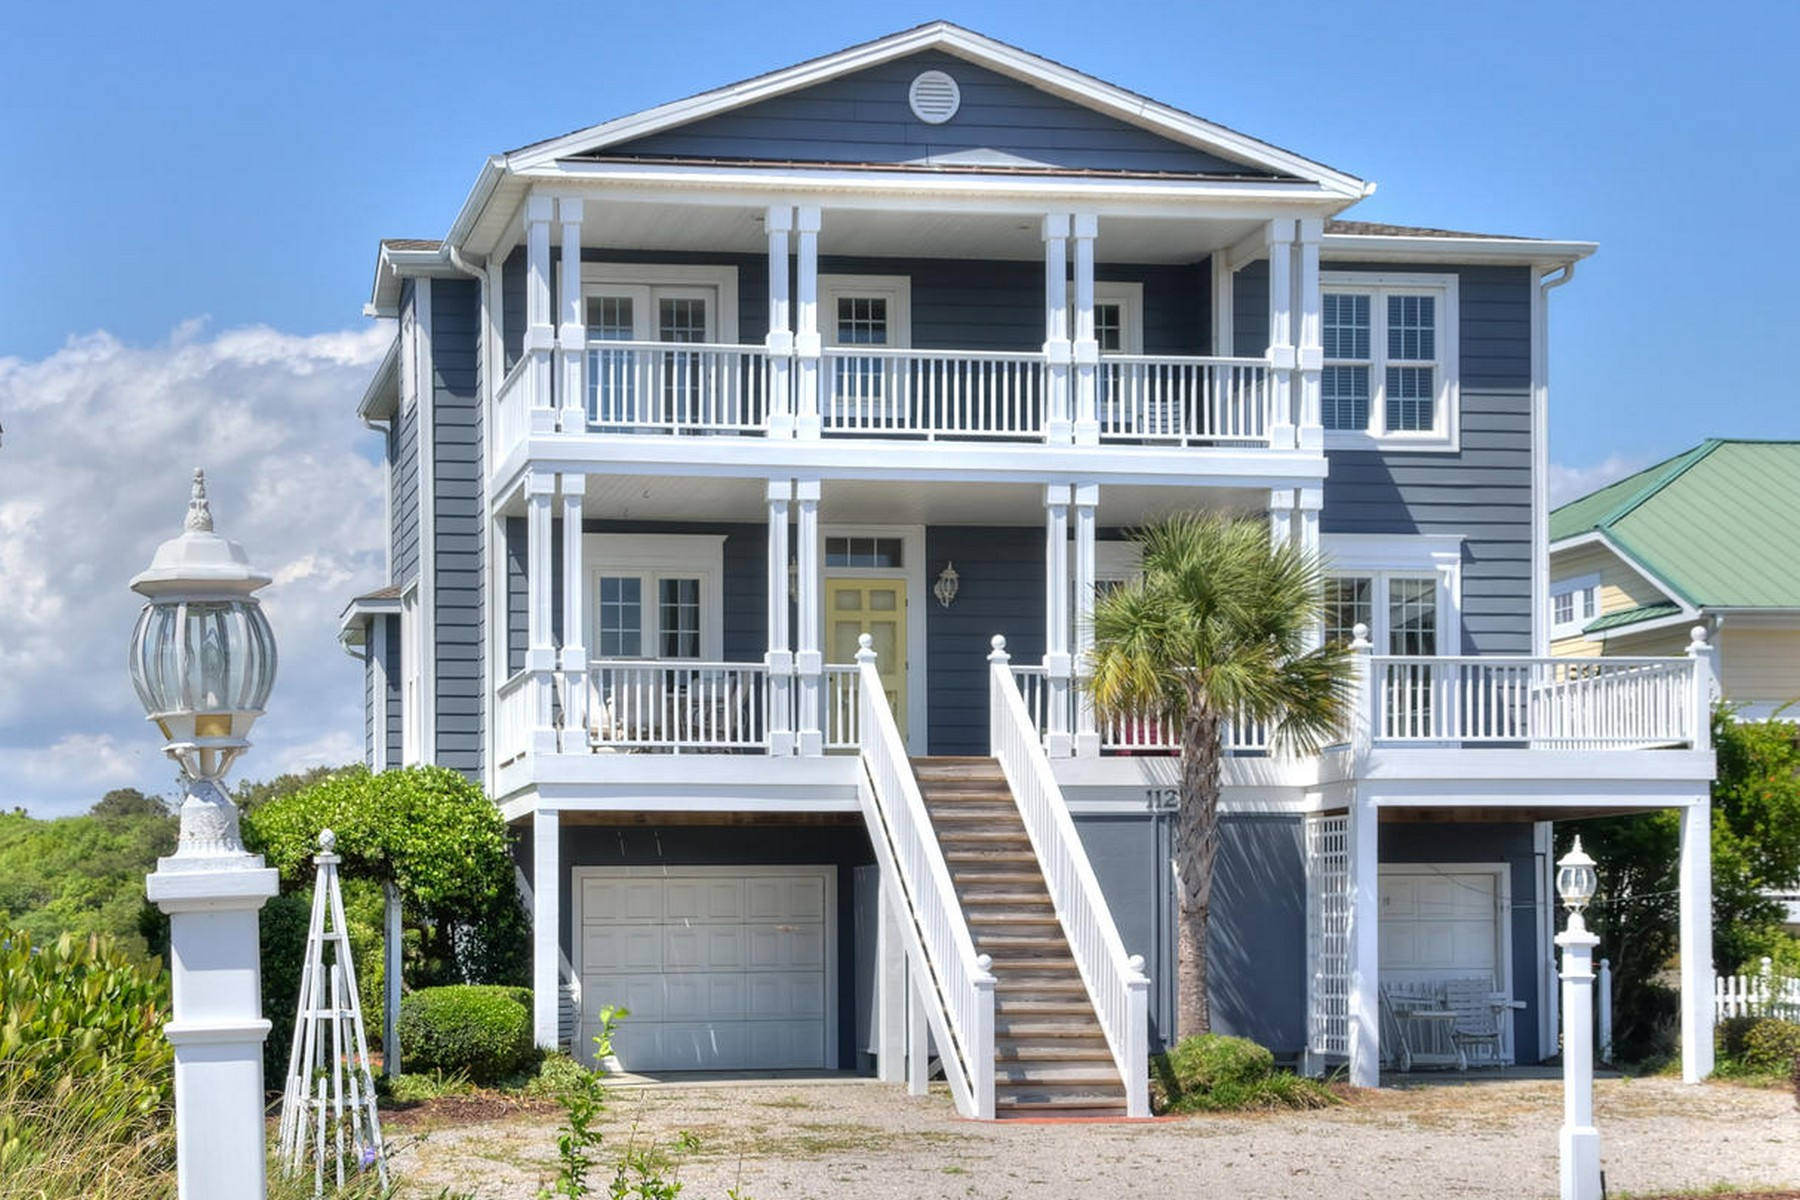 Incredible ICW Island Home 112 Golden Dune Way Lot #32 Holden Beach, North Carolina 28462 United States